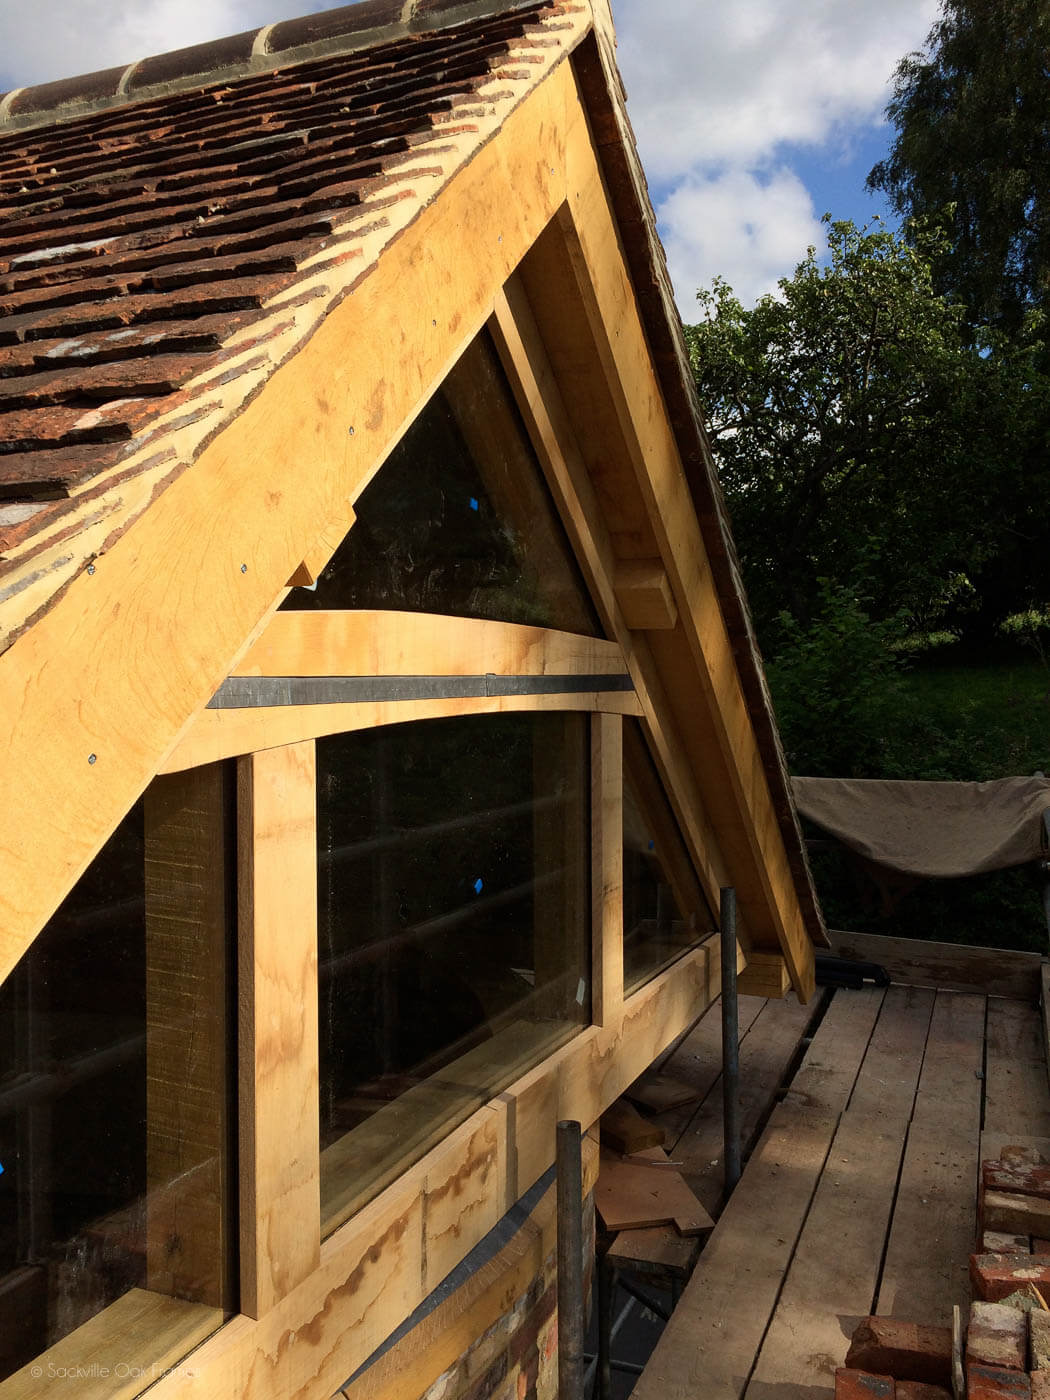 Sackville Oak Frames - Oak Framed Roof - Restoration Project - Building With Glass